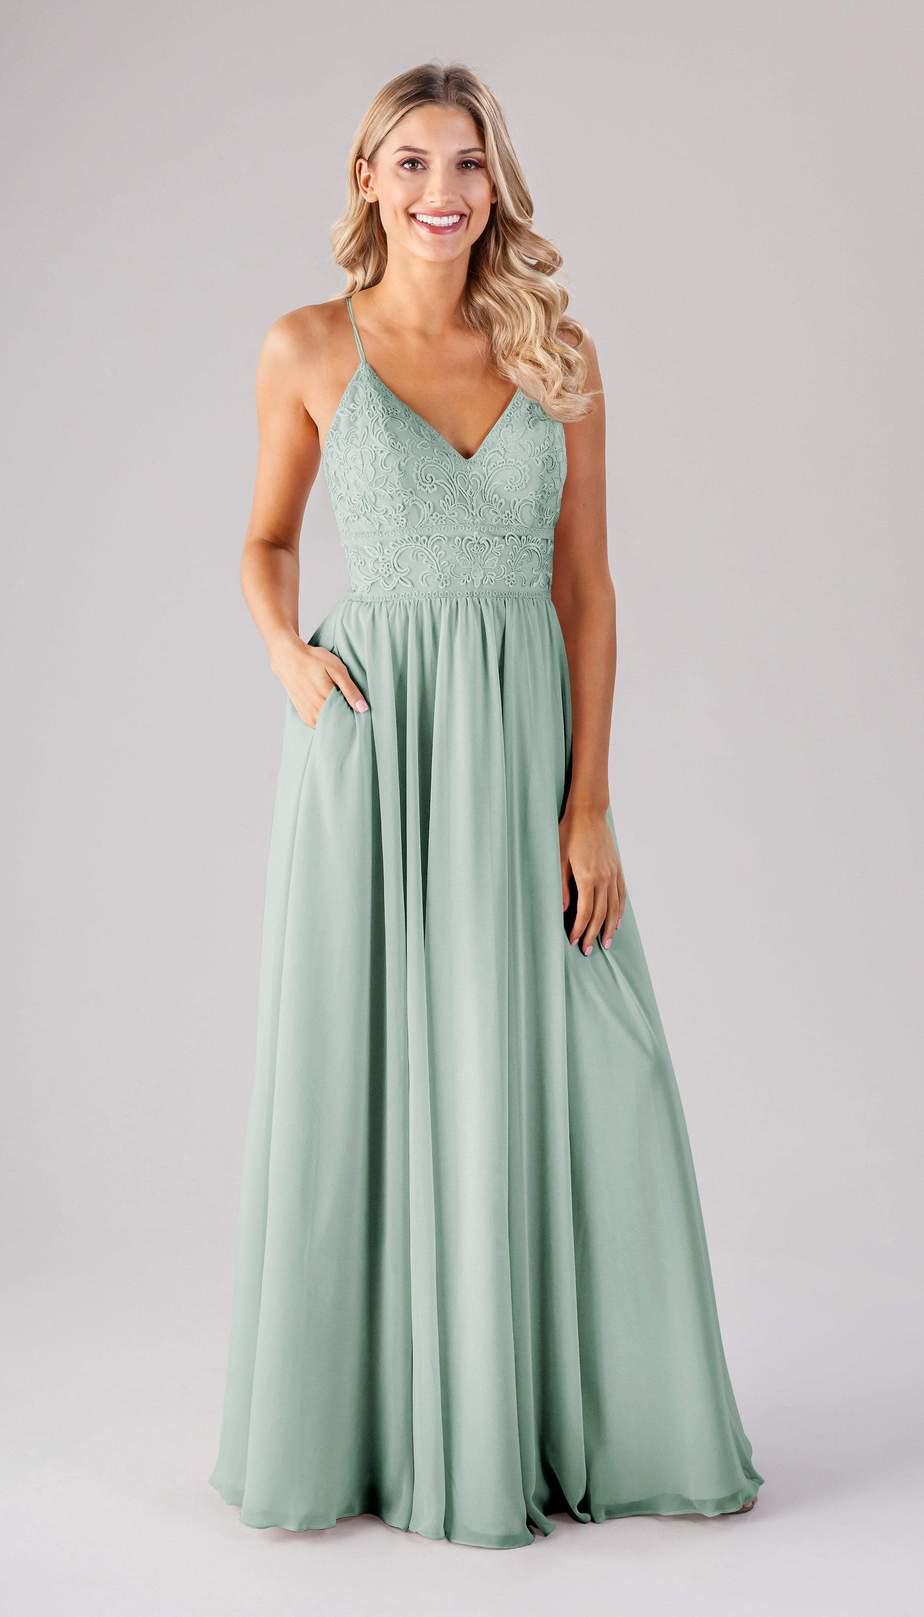 sea glass green long bridesmaid dress